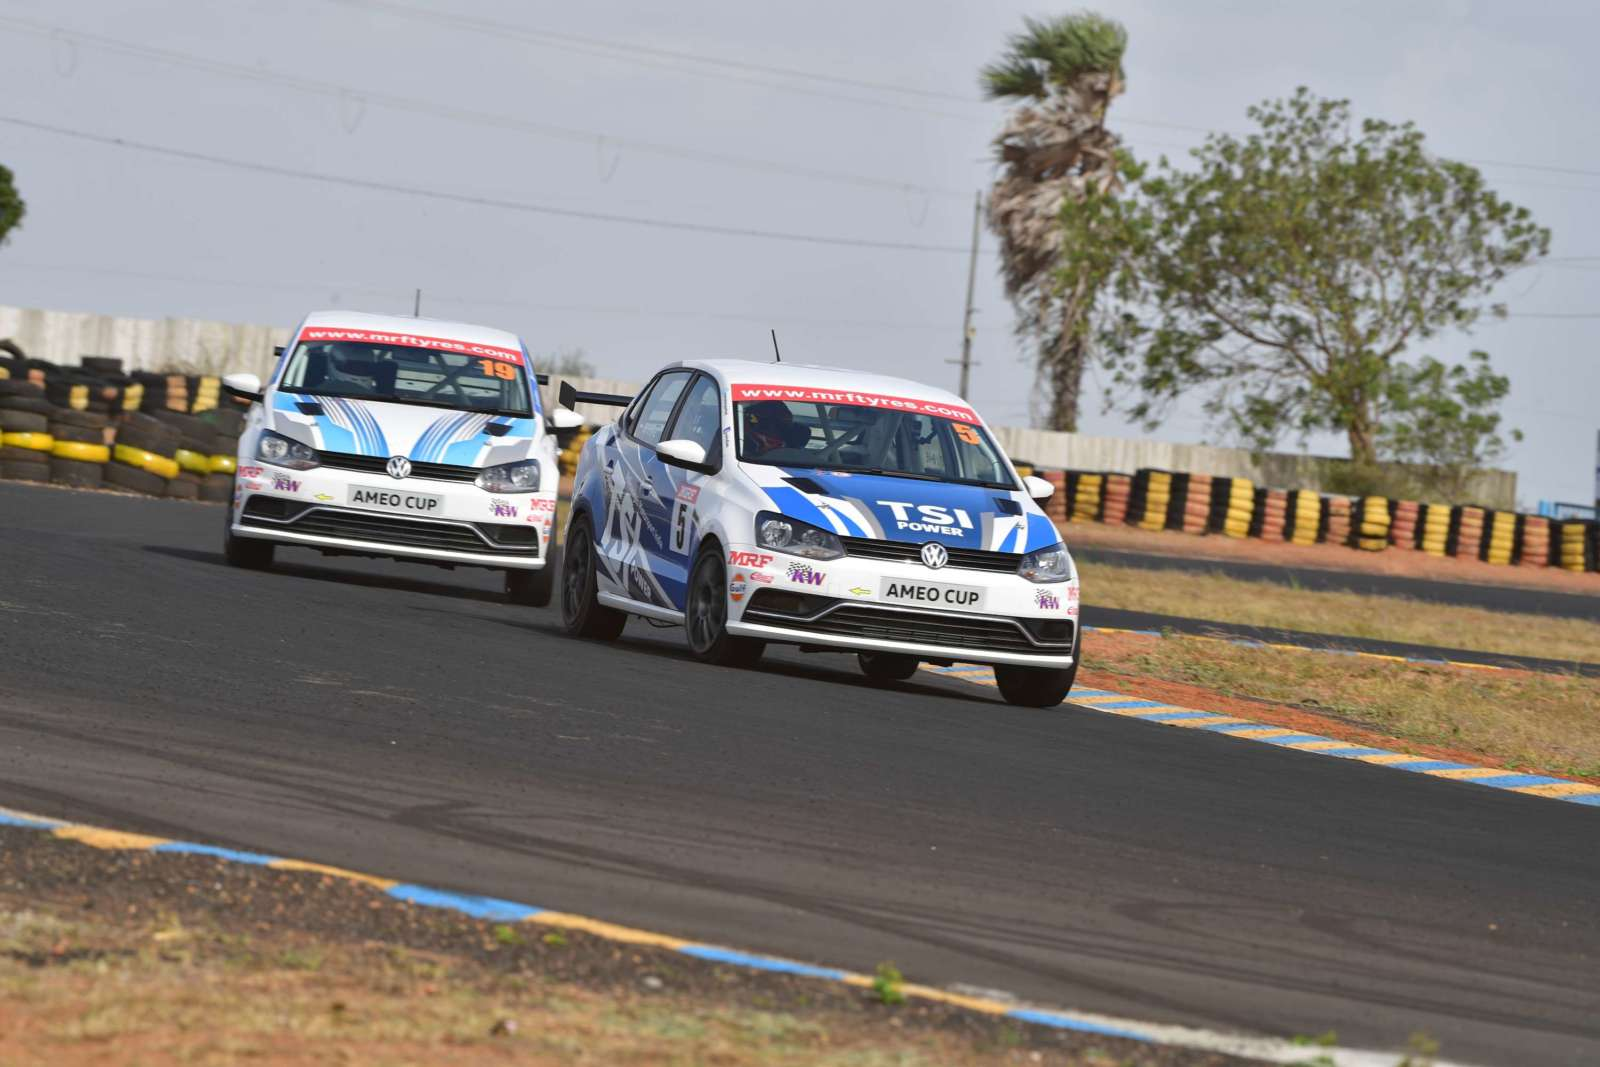 Ameo-race-car-in-action_3